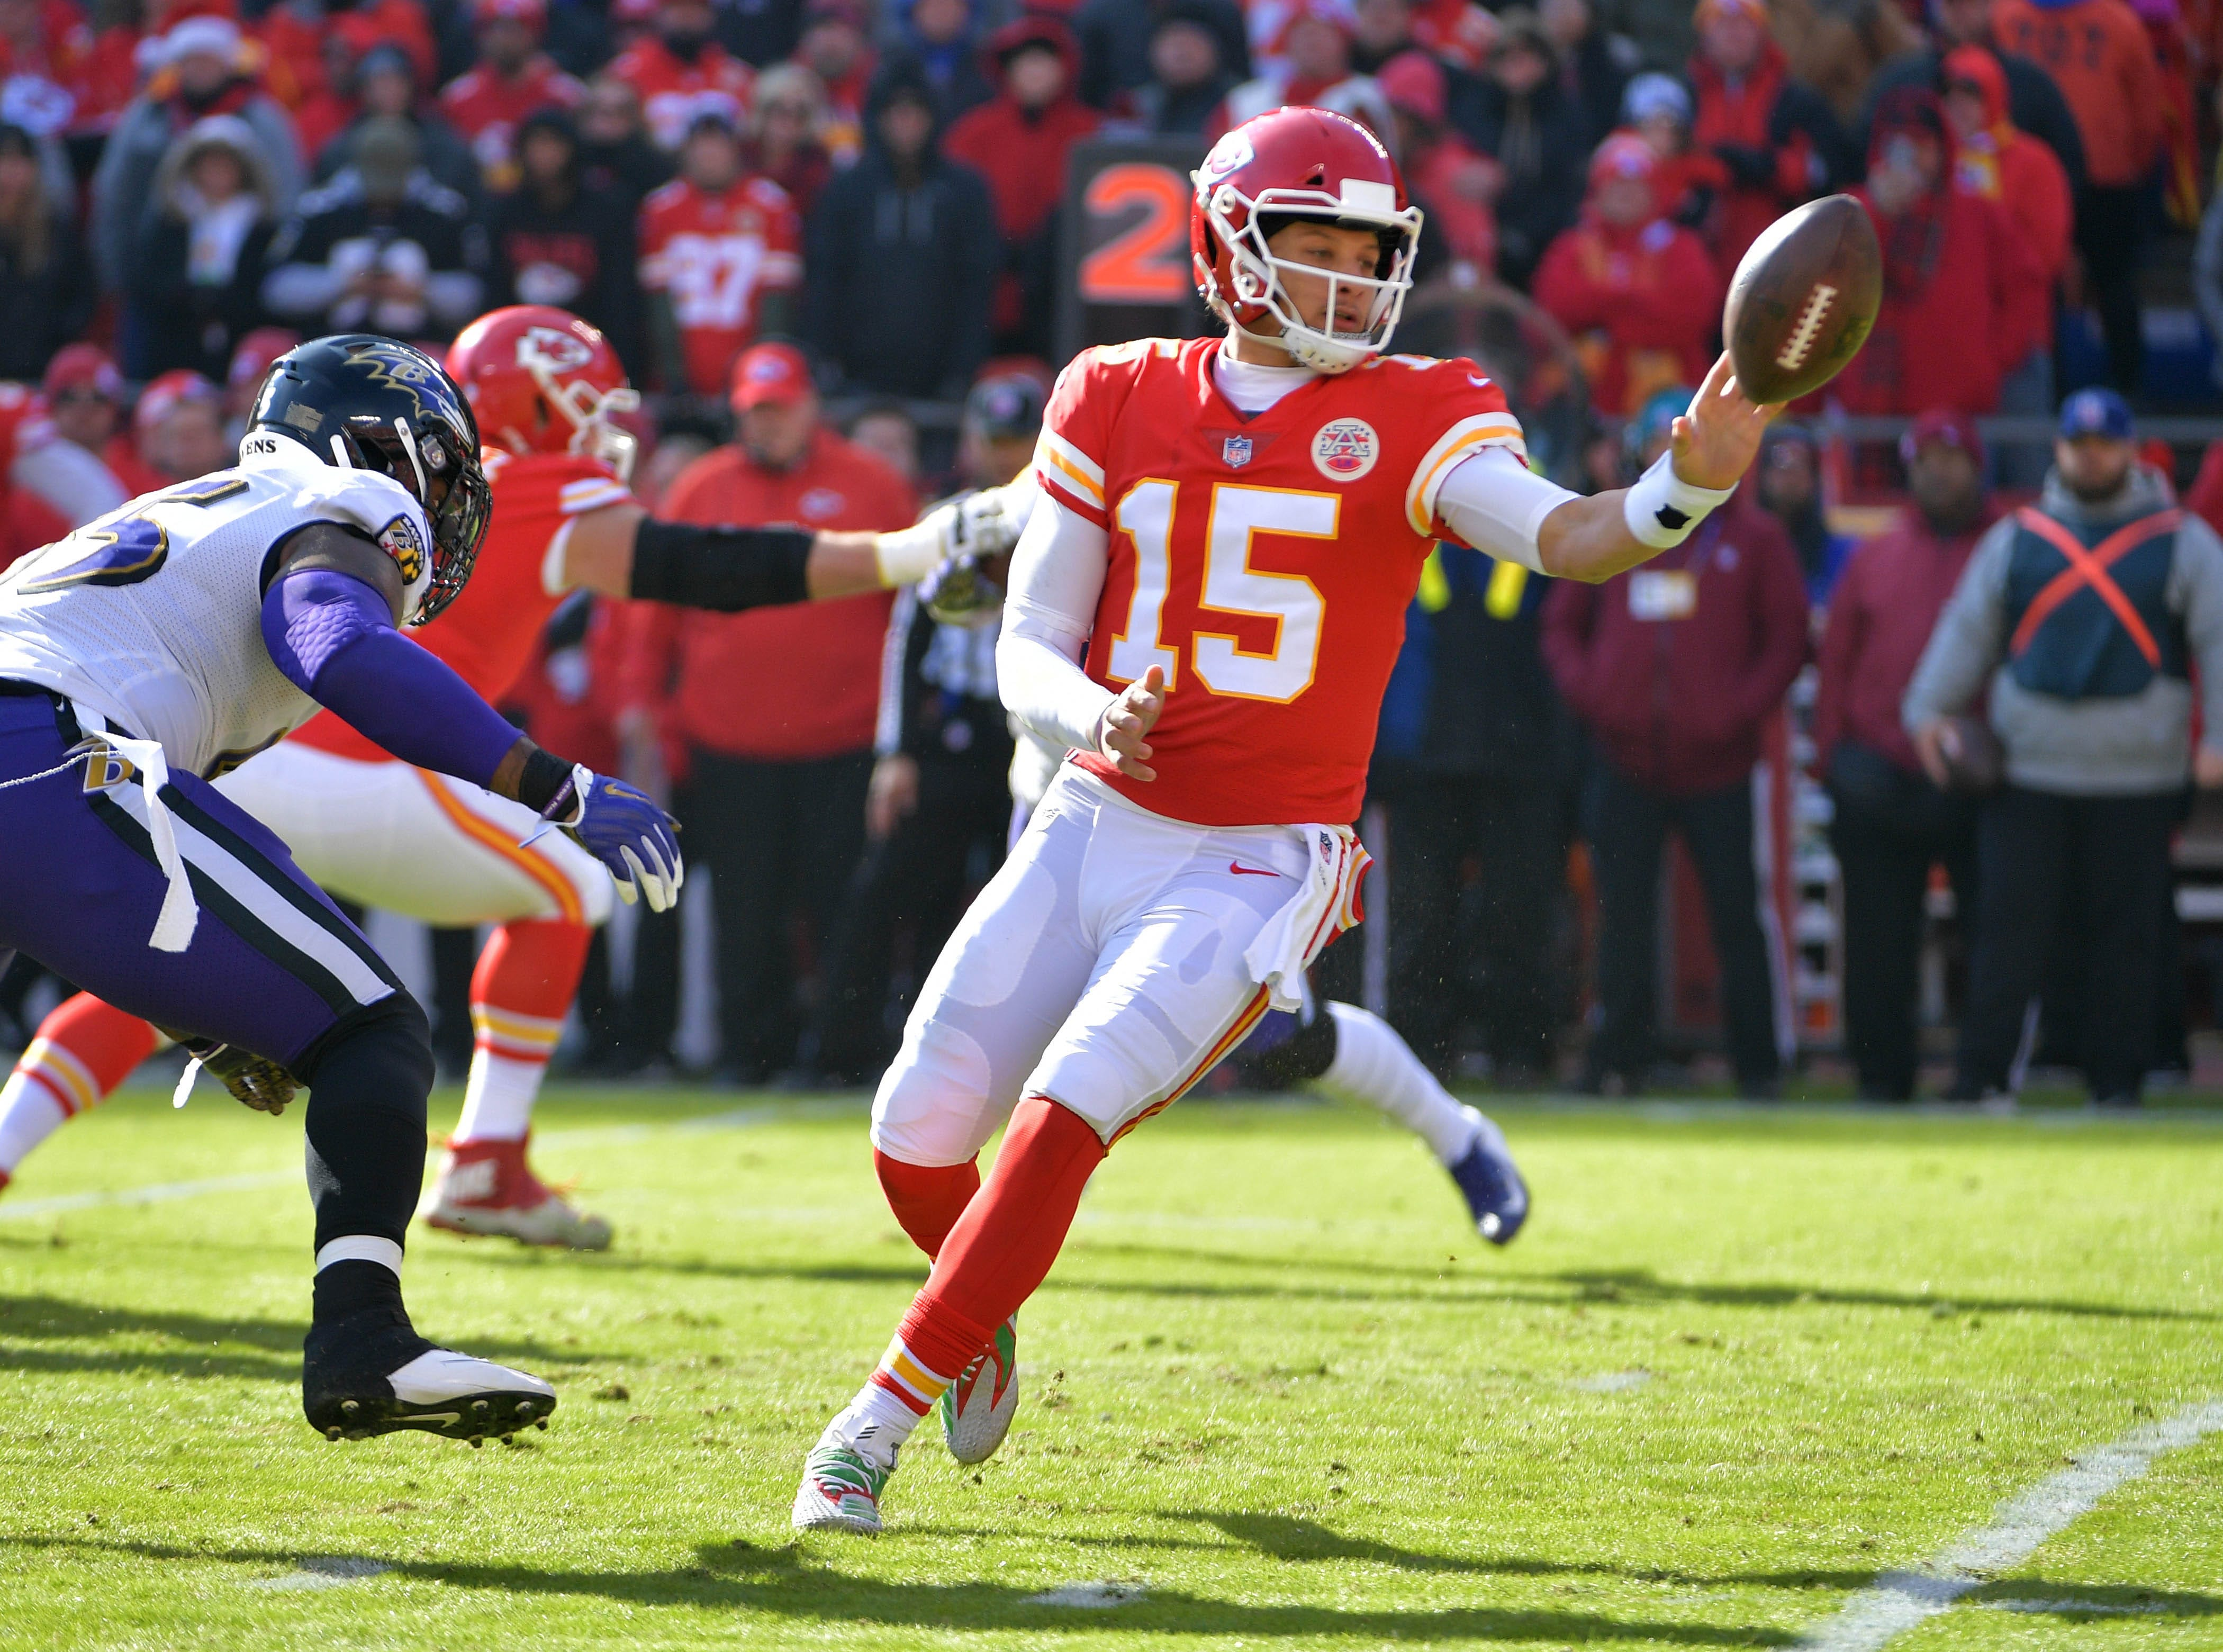 Chiefs quarterback Patrick Mahomes laterals the ball during the first half against the Ravens.